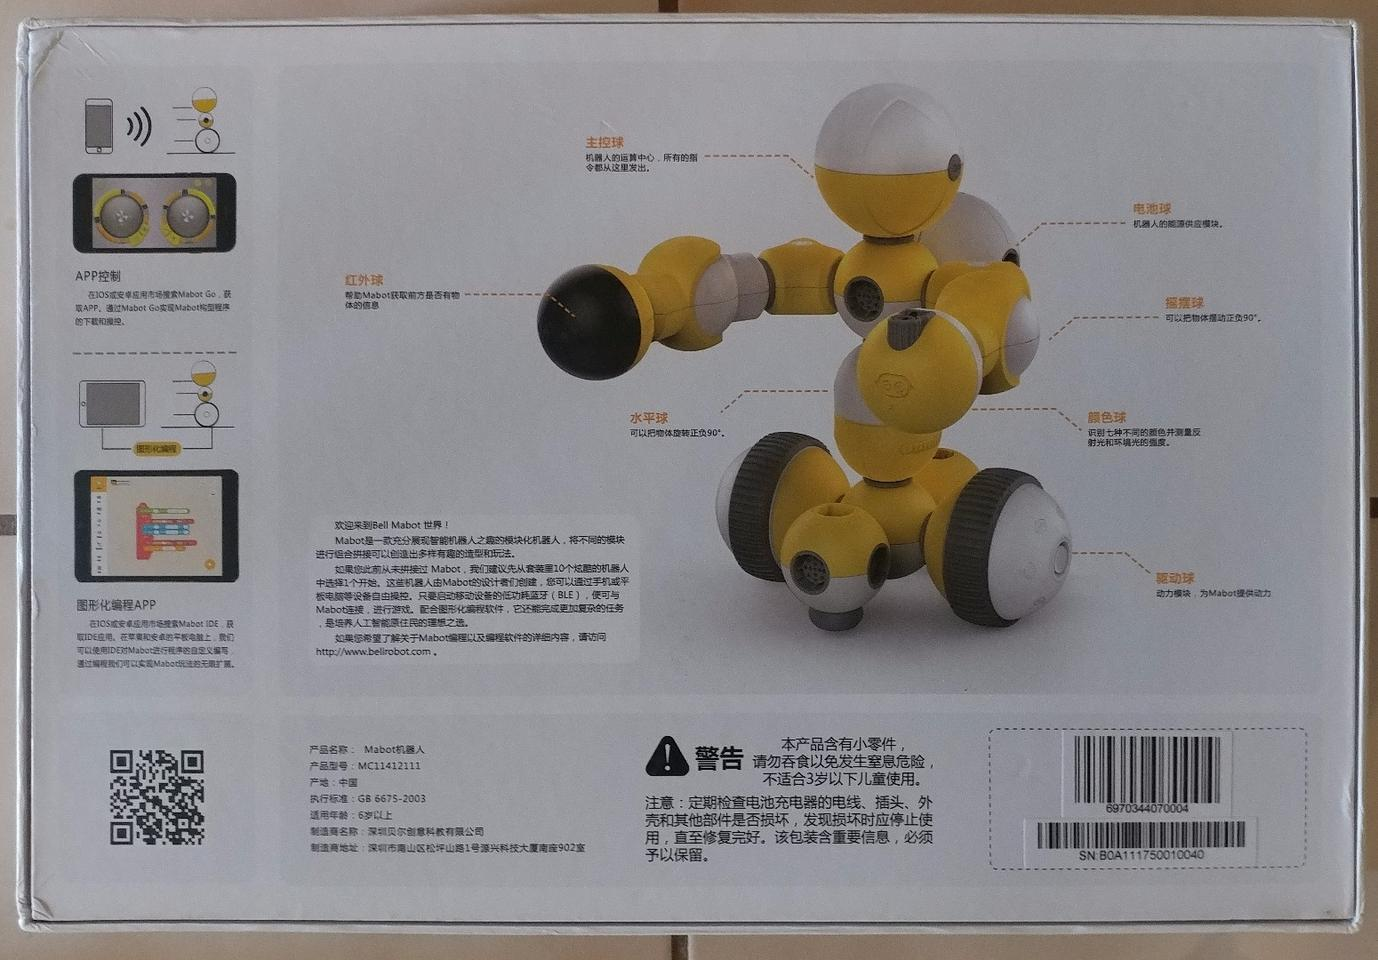 """On the back of the Mabot box is a picture of the """"Big M"""" robot, which features most of the kit's major capabilities in one pre-designed bot"""